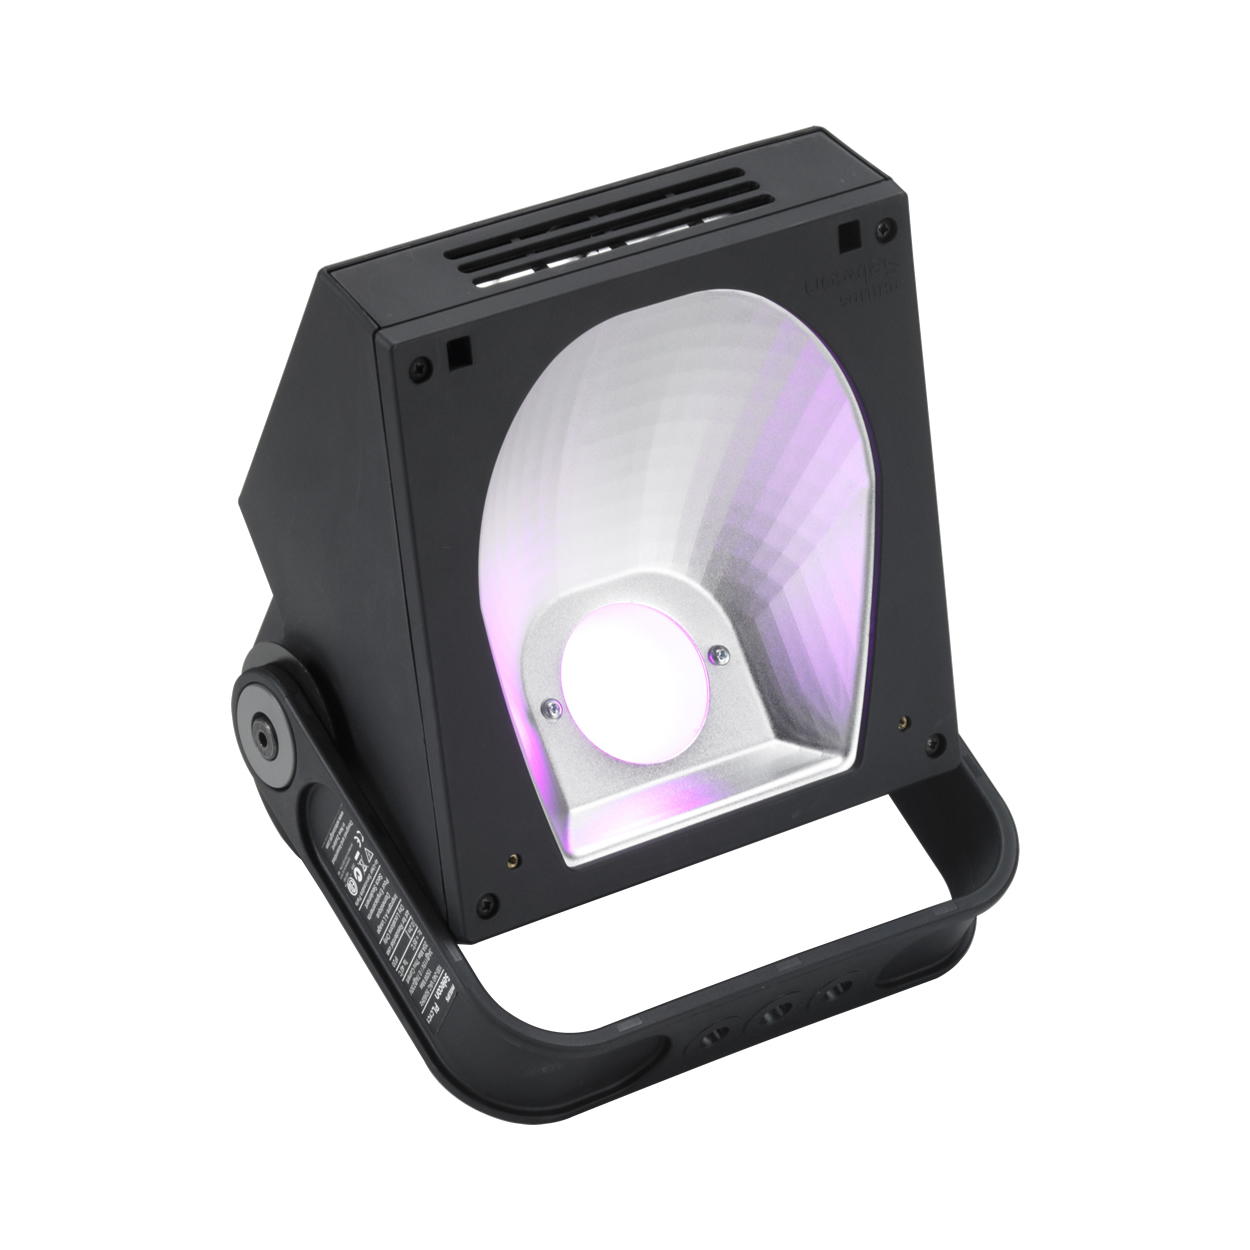 Philips selecon plcyc1 led luminaire lightmoves for Luminaire exterieur led philips